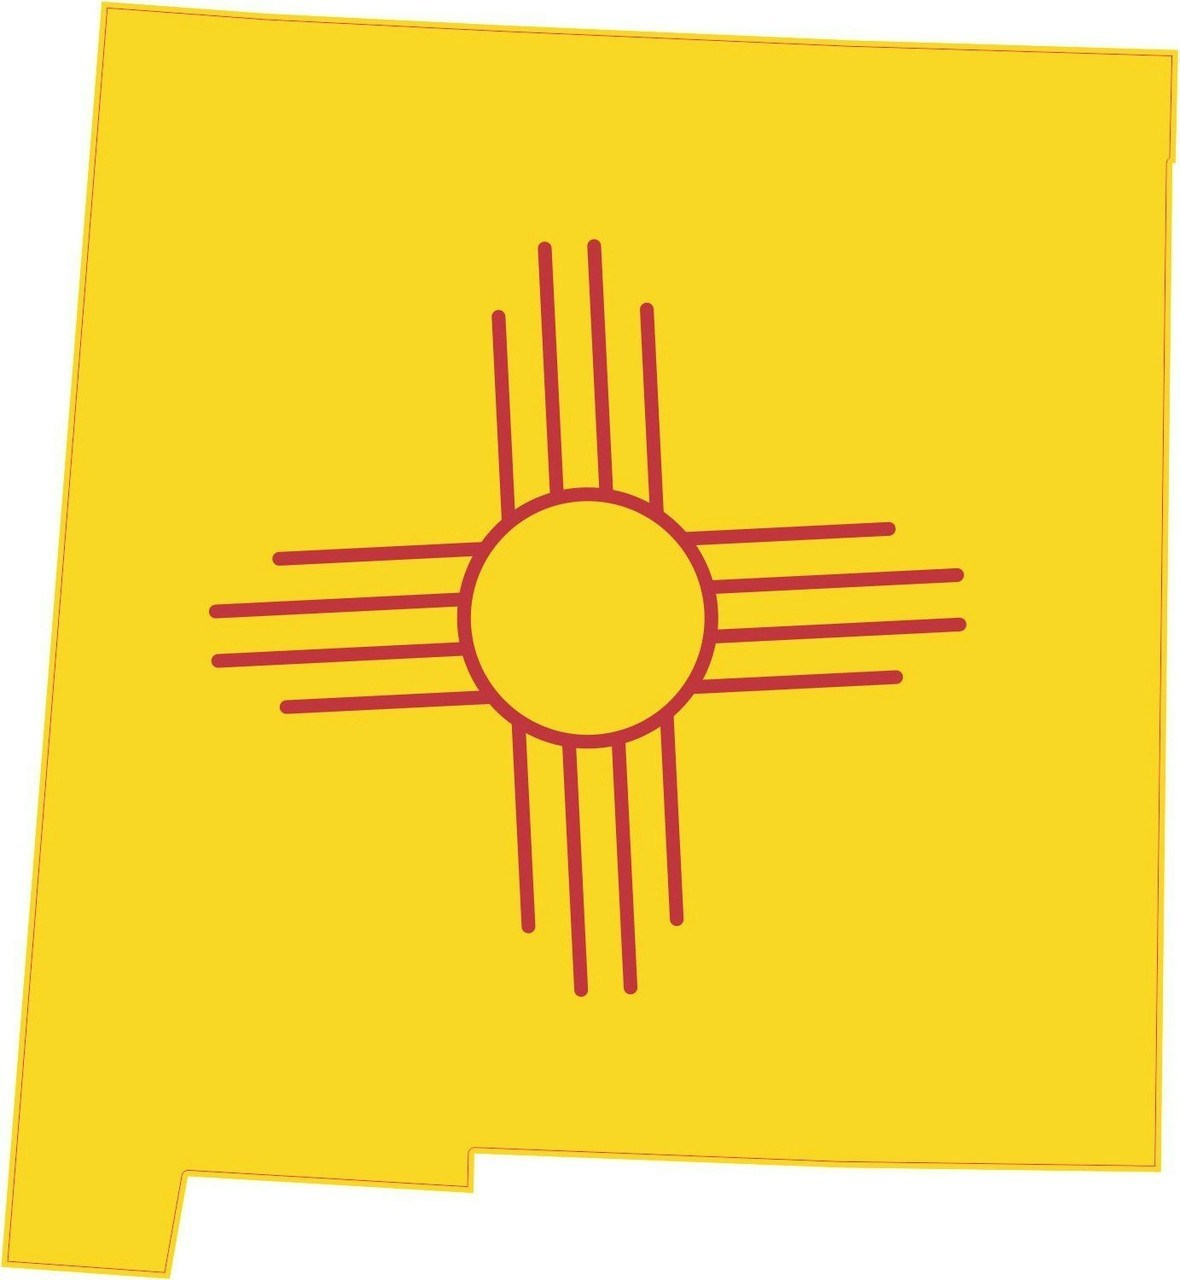 5inx4.5in Die Cut New Mexico Shape State Flag Bumper Sticker Decal Stickers.